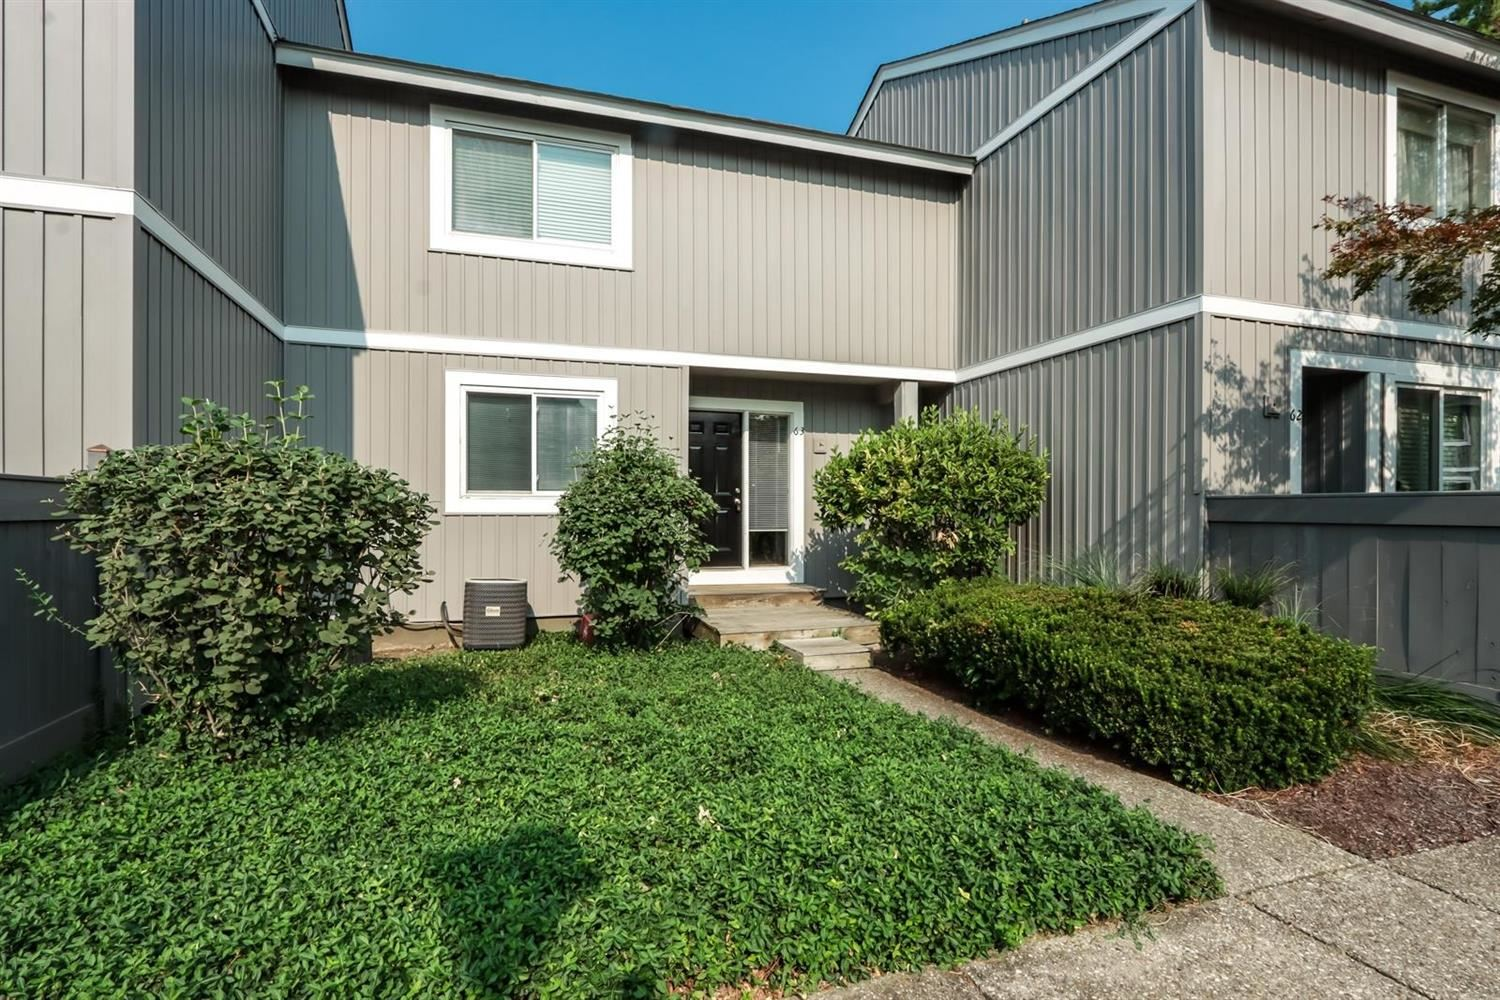 63 Twin Lakes Drive, Fairfield, OH 45014 - #: 1675143